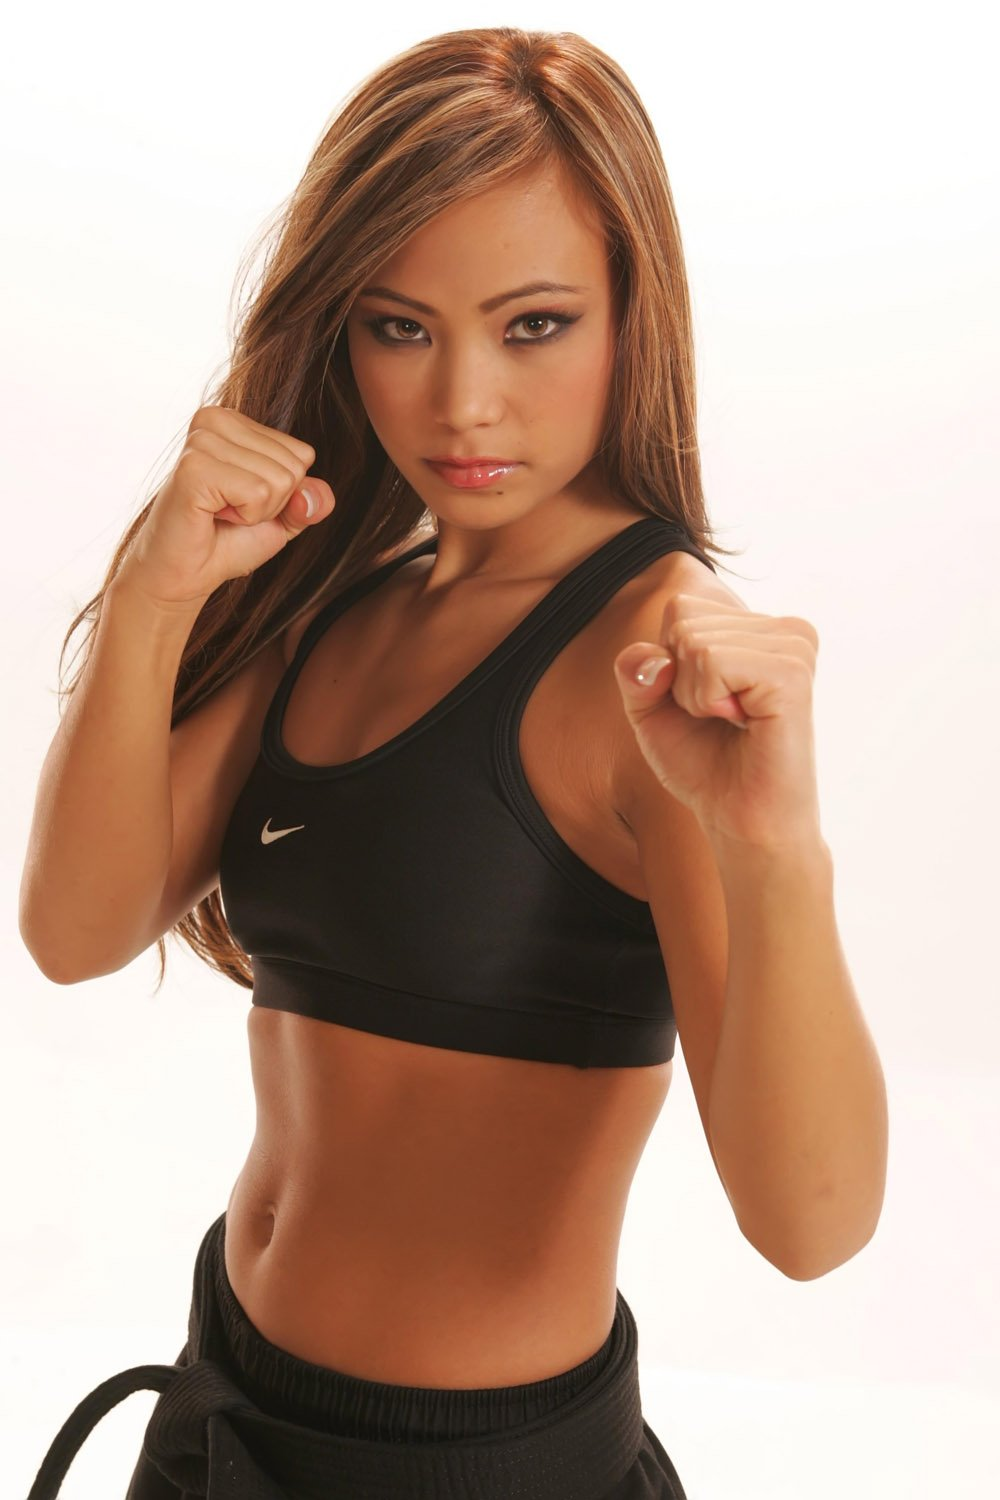 Hot Michelle Waterson nude (33 photos), Ass, Bikini, Instagram, cameltoe 2020